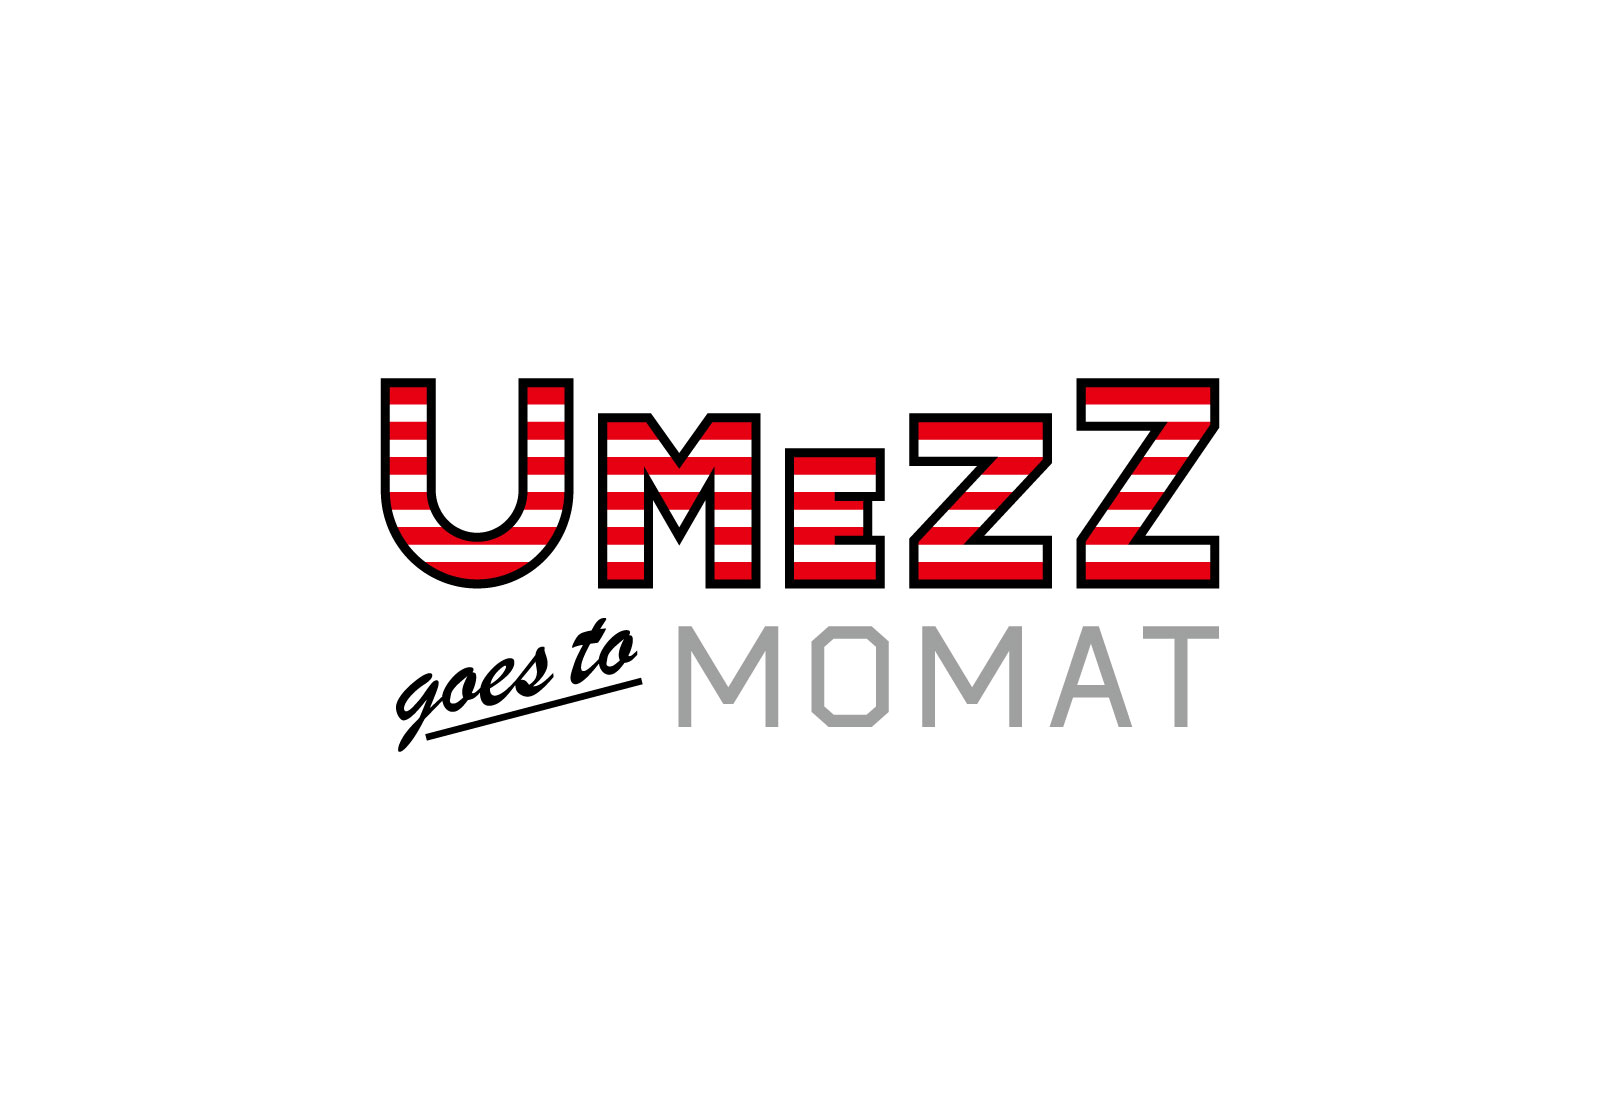 UMEZZ goes to MOMAT